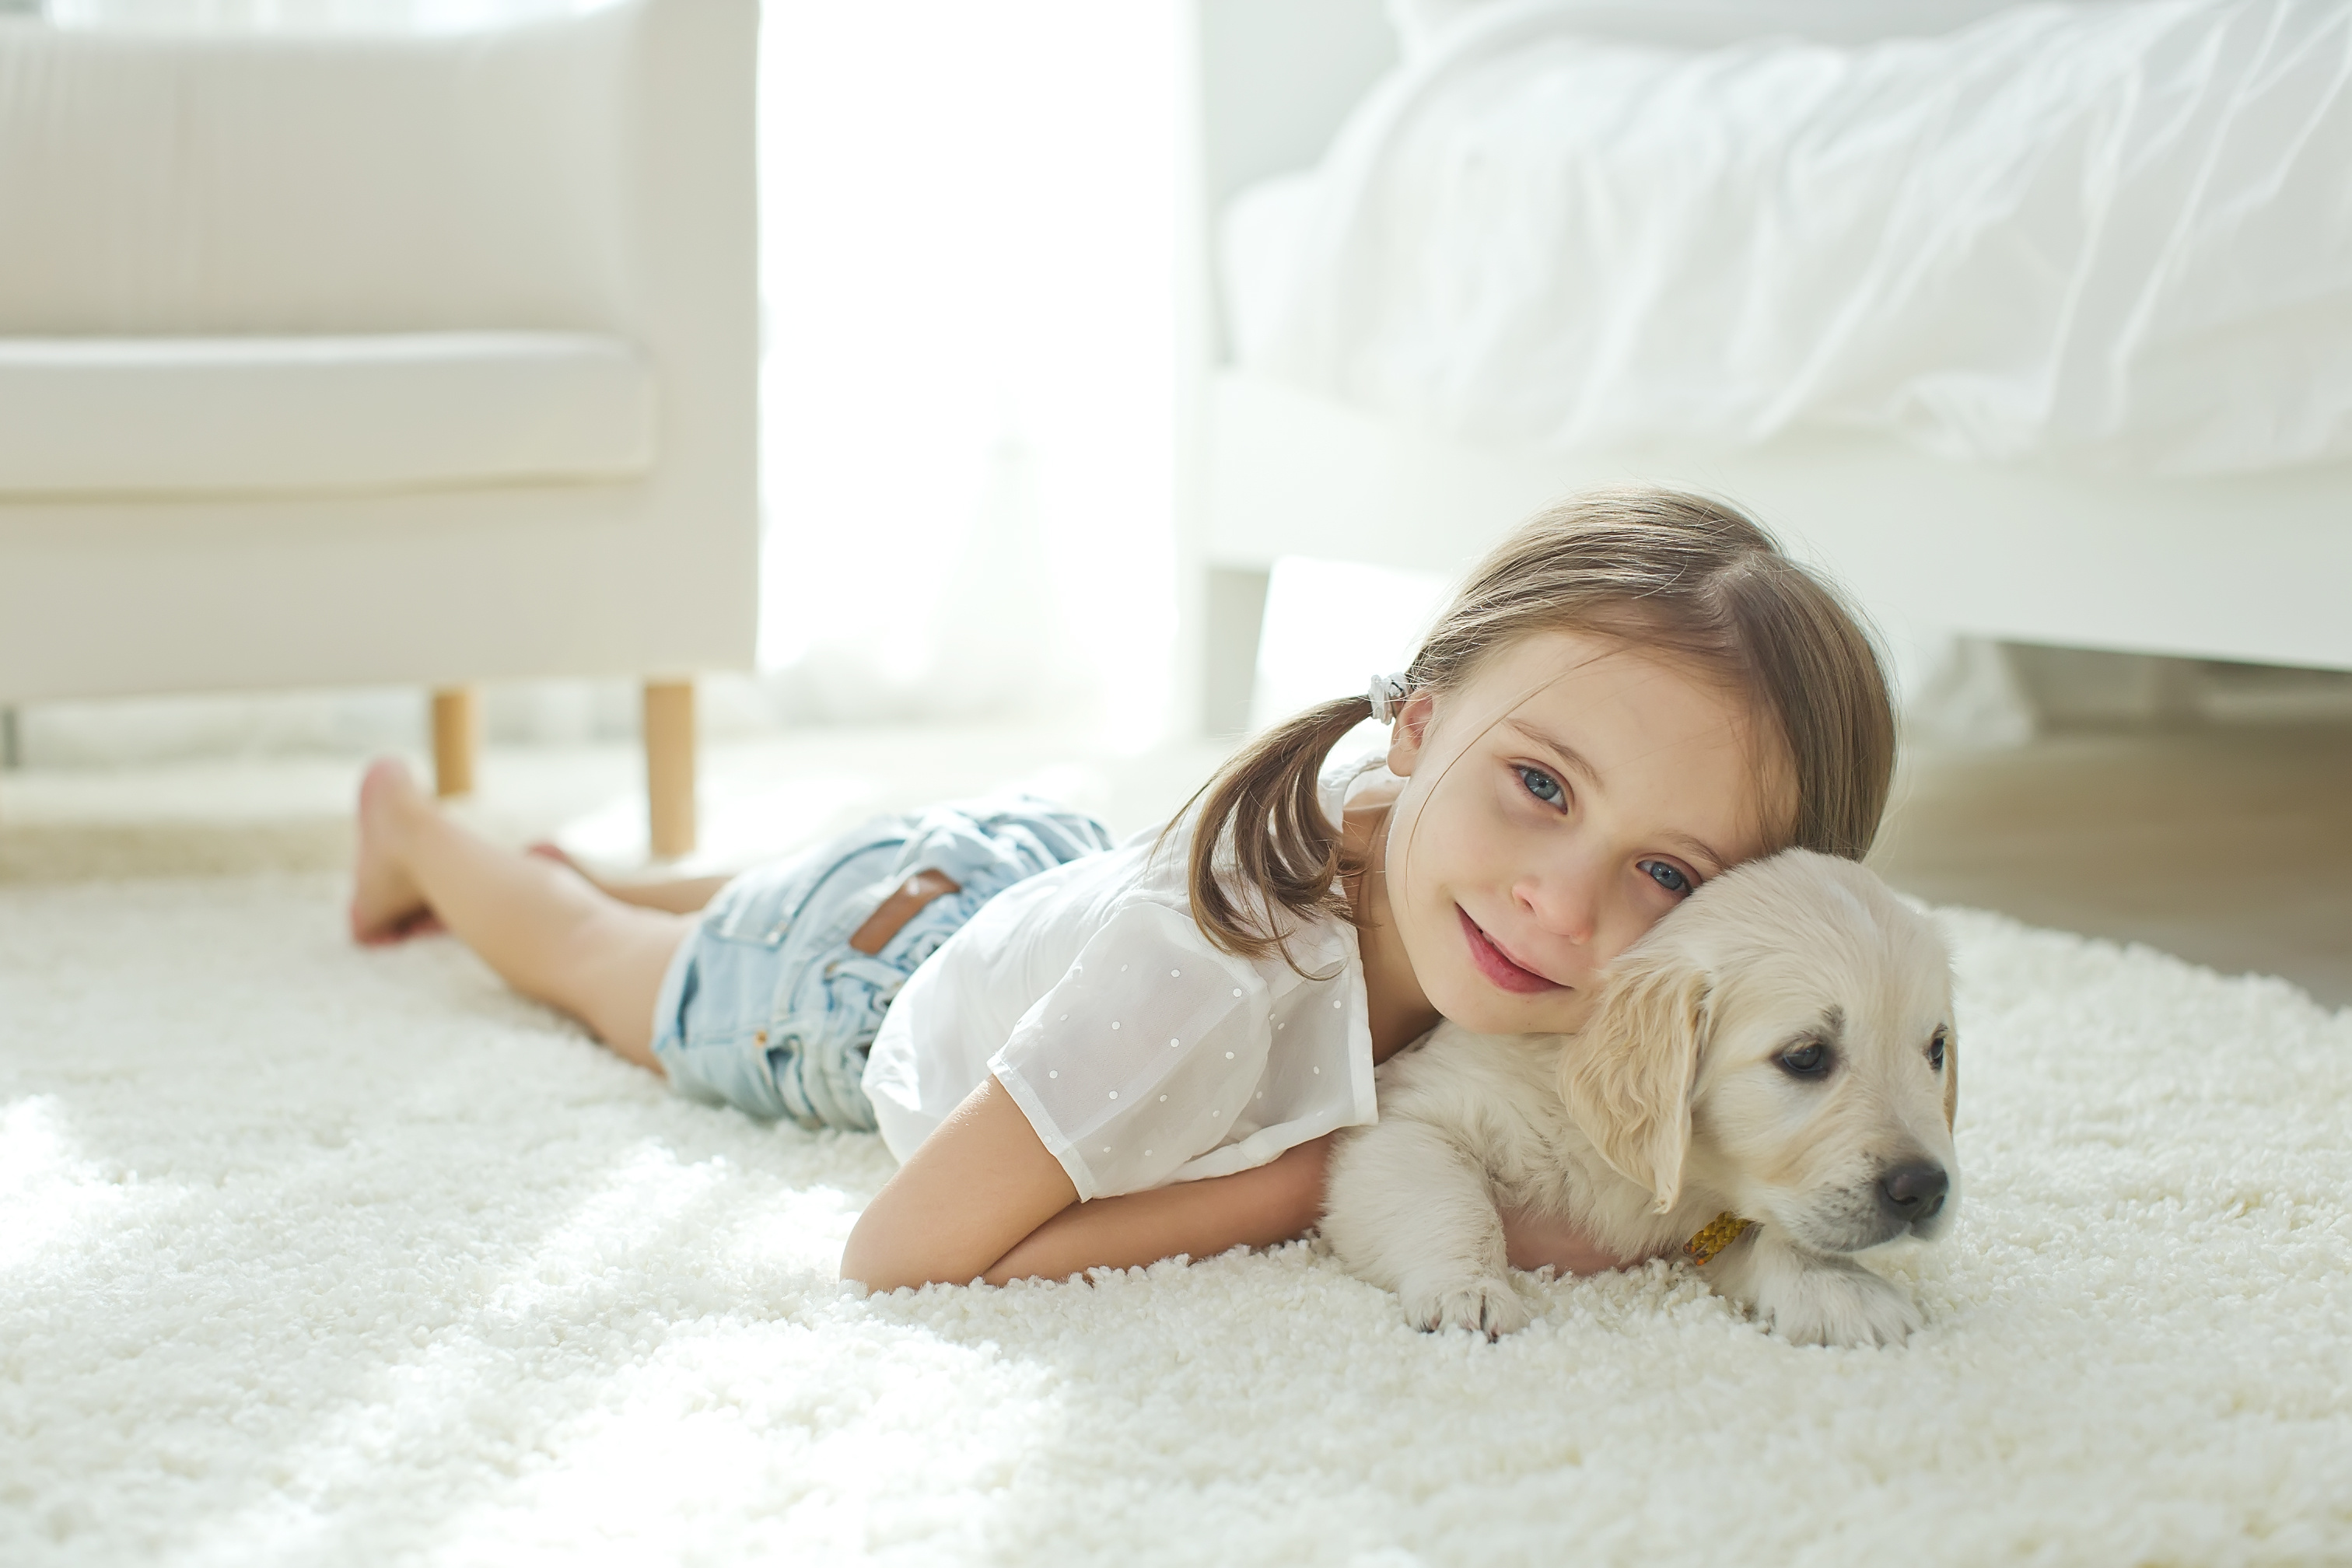 Carpet cleaning in Lincoln, ND from Carpet World